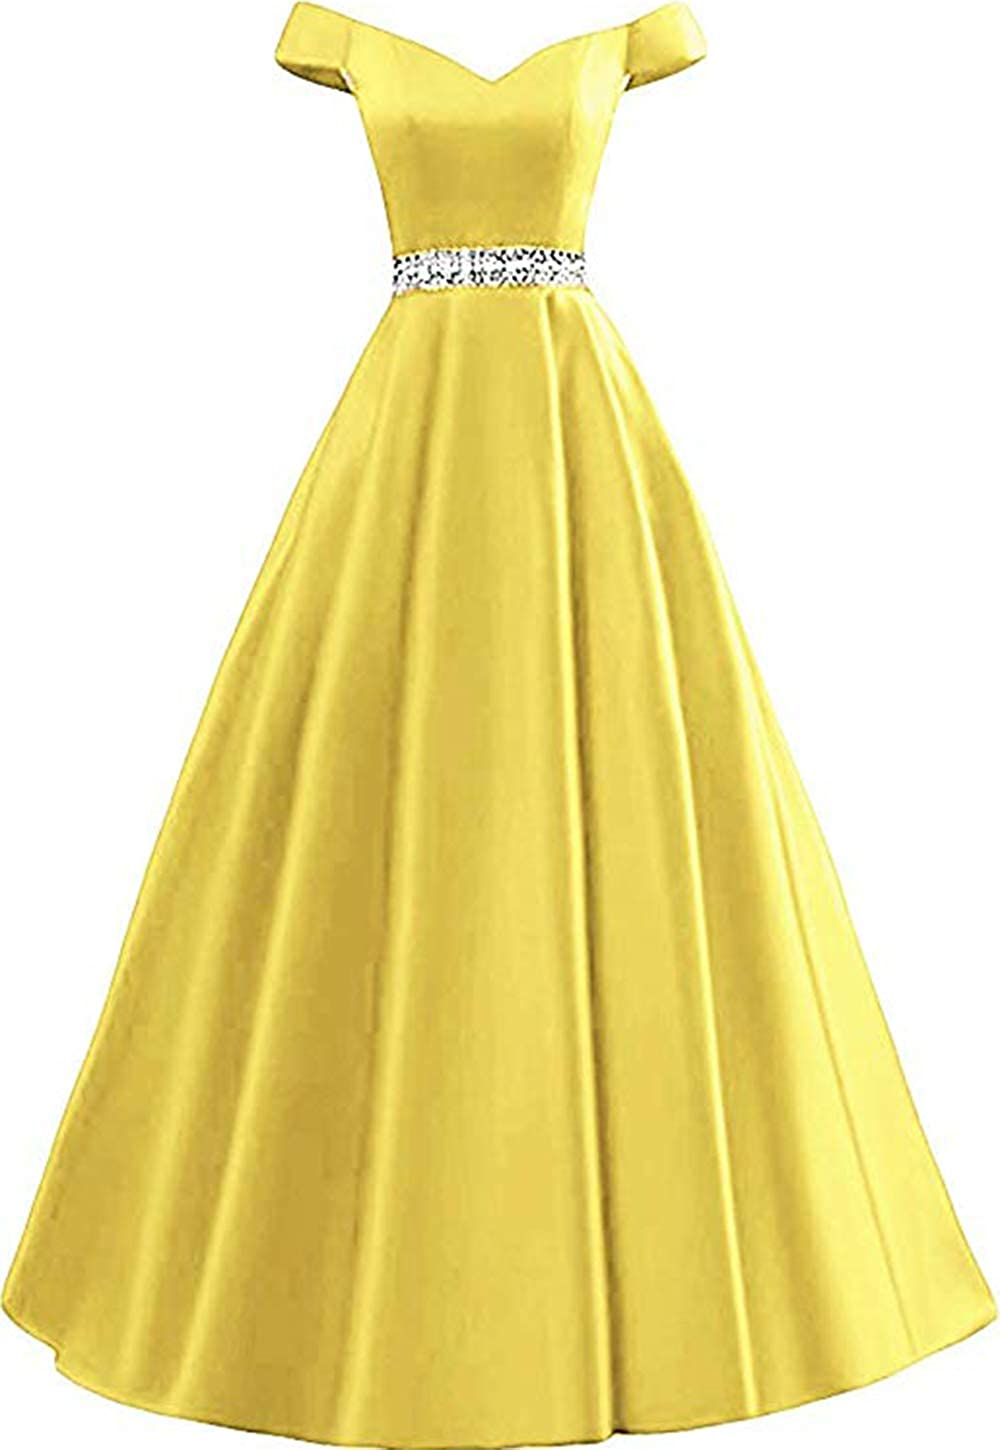 Yellow Rmaytiked Women's Off Shoulder Prom Dresses Long 2019 Satin Beaded A Line Formal Evening Ball Gowns with Pockets